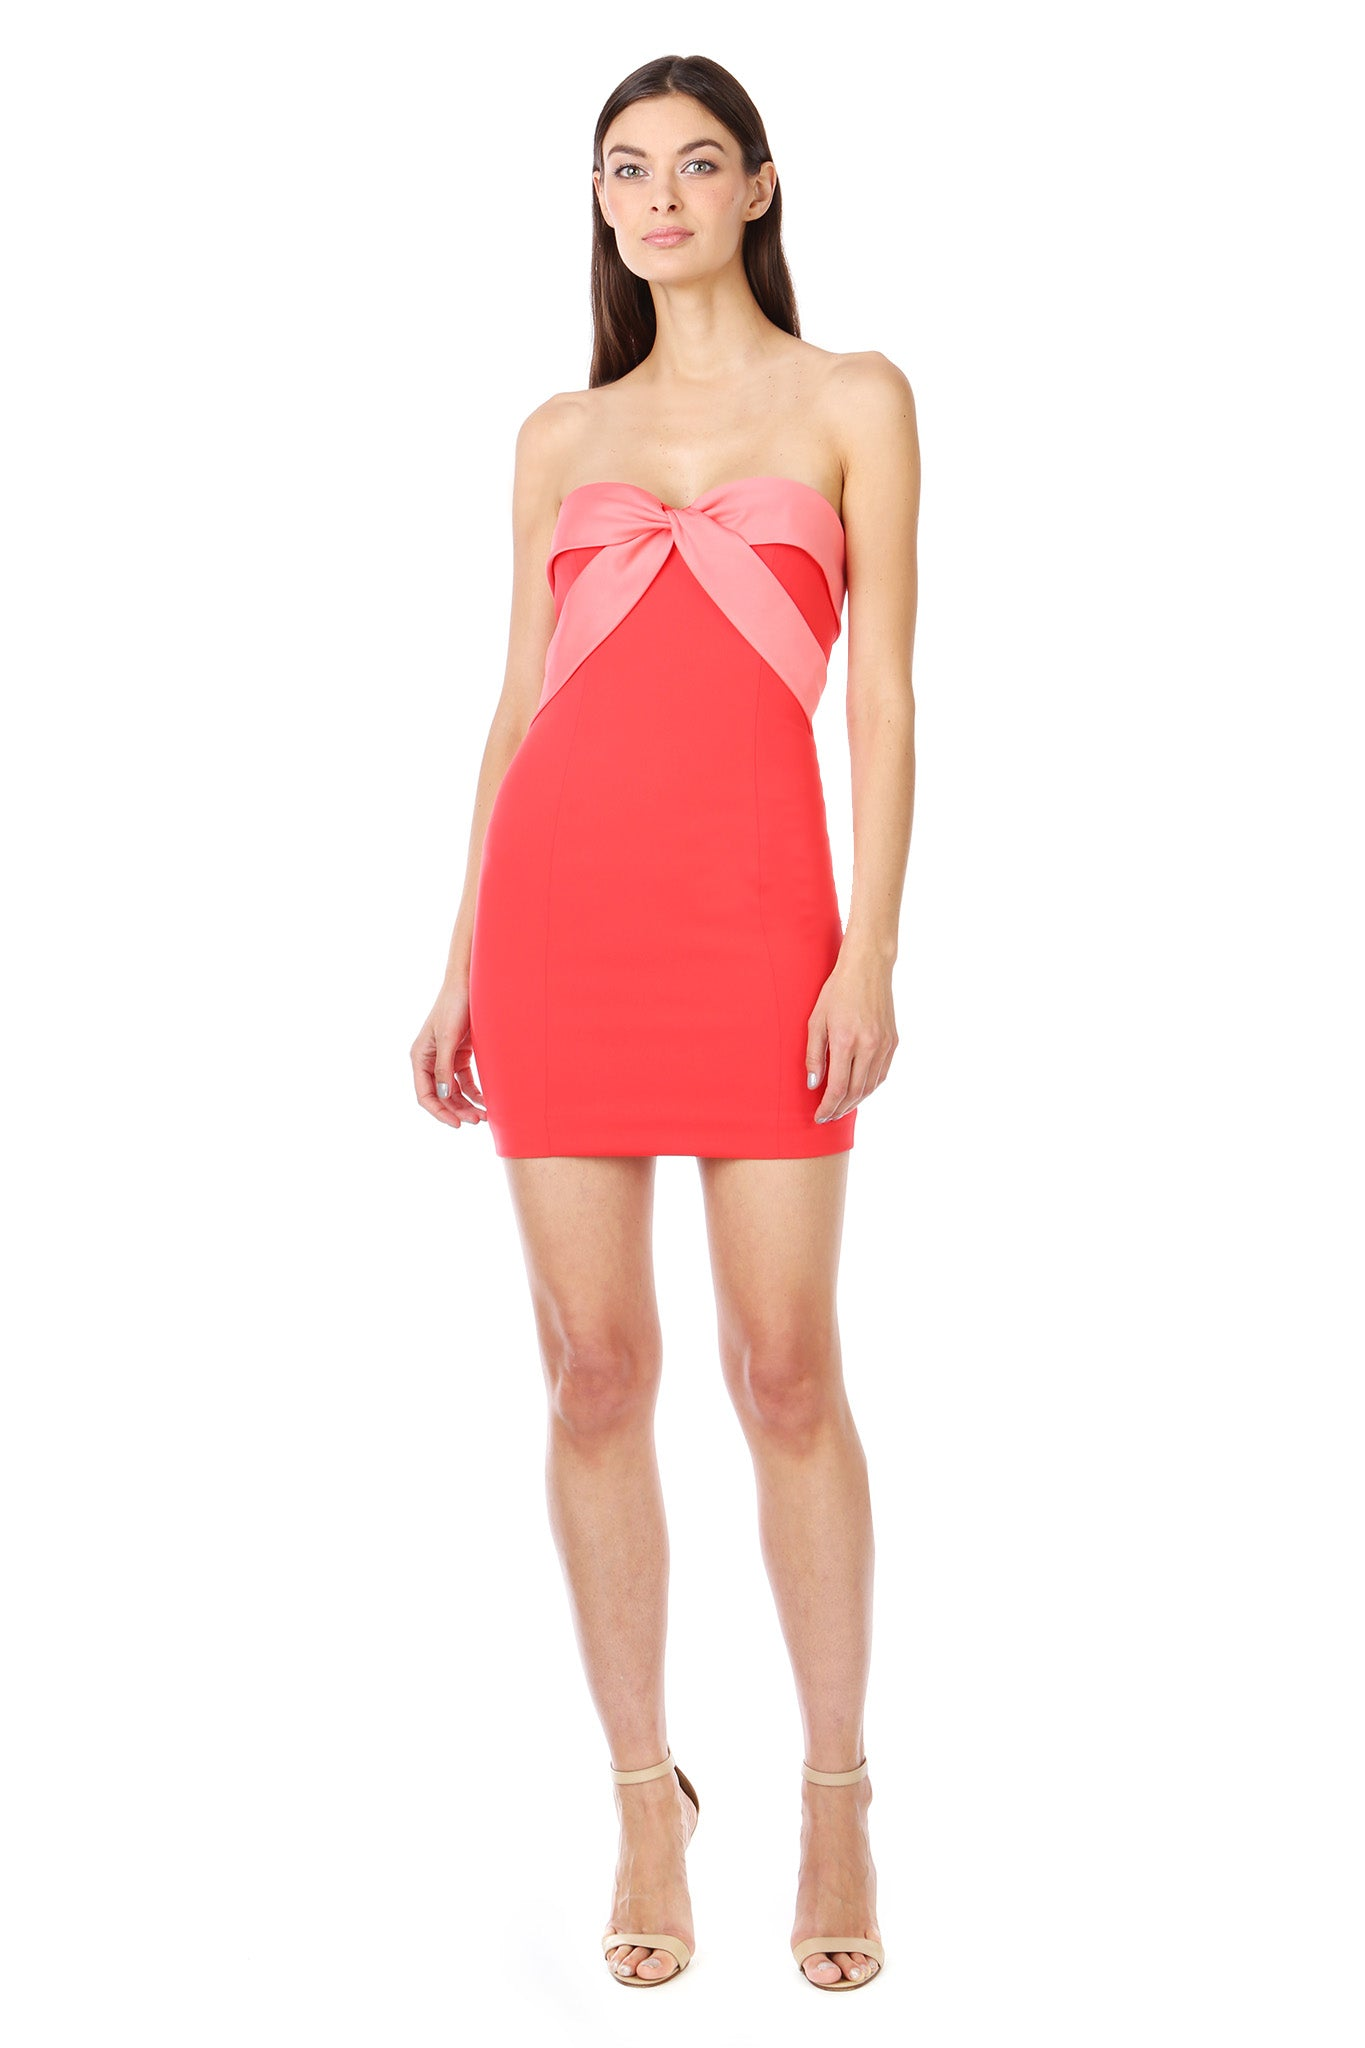 Coral Red Silky Bandeau Strapless Mini Dress - Front View